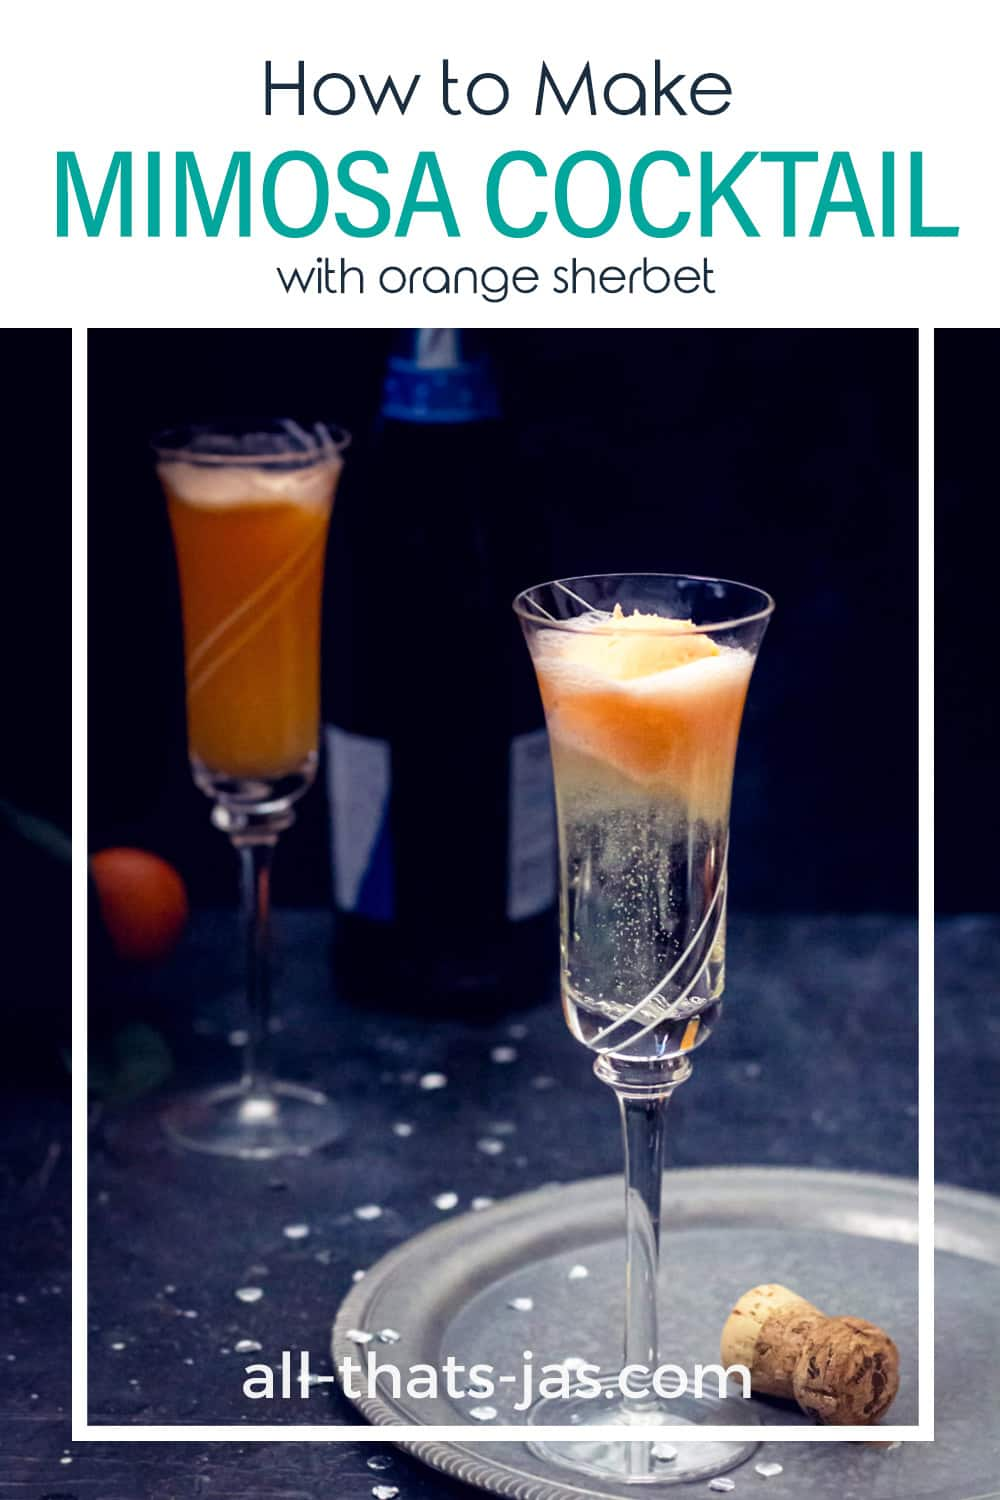 A glass with sparkling wine topped with a scoop of sherbet with text overlay.